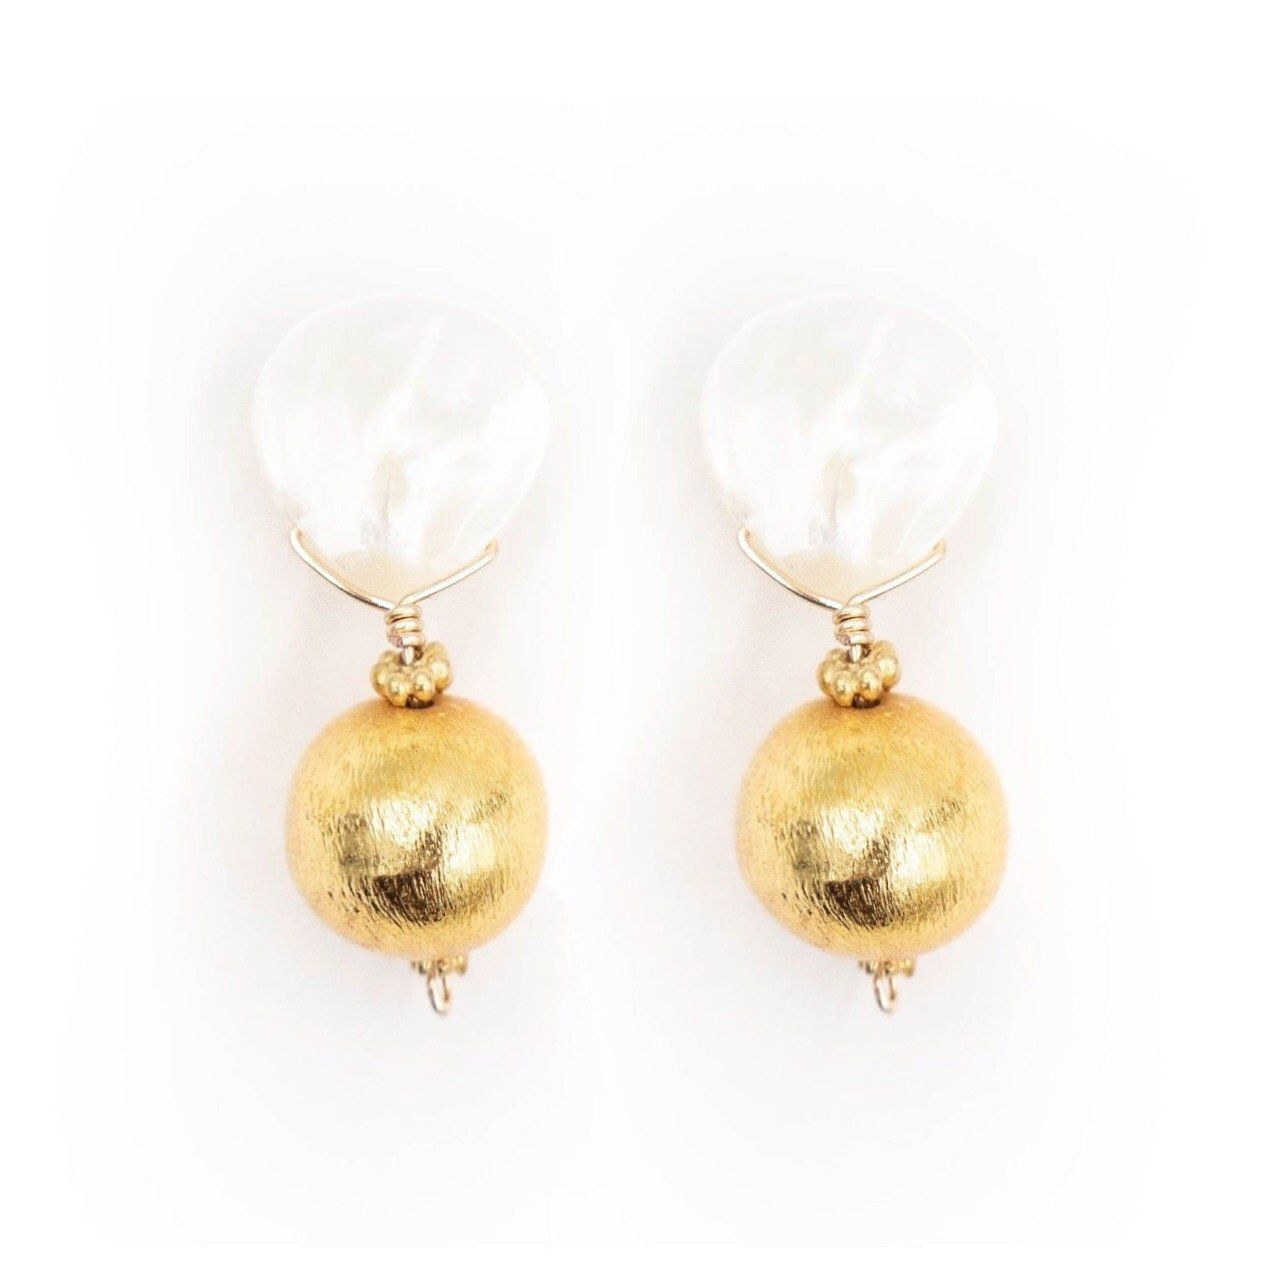 Hazen & Co. - Claire Earrings, Front View